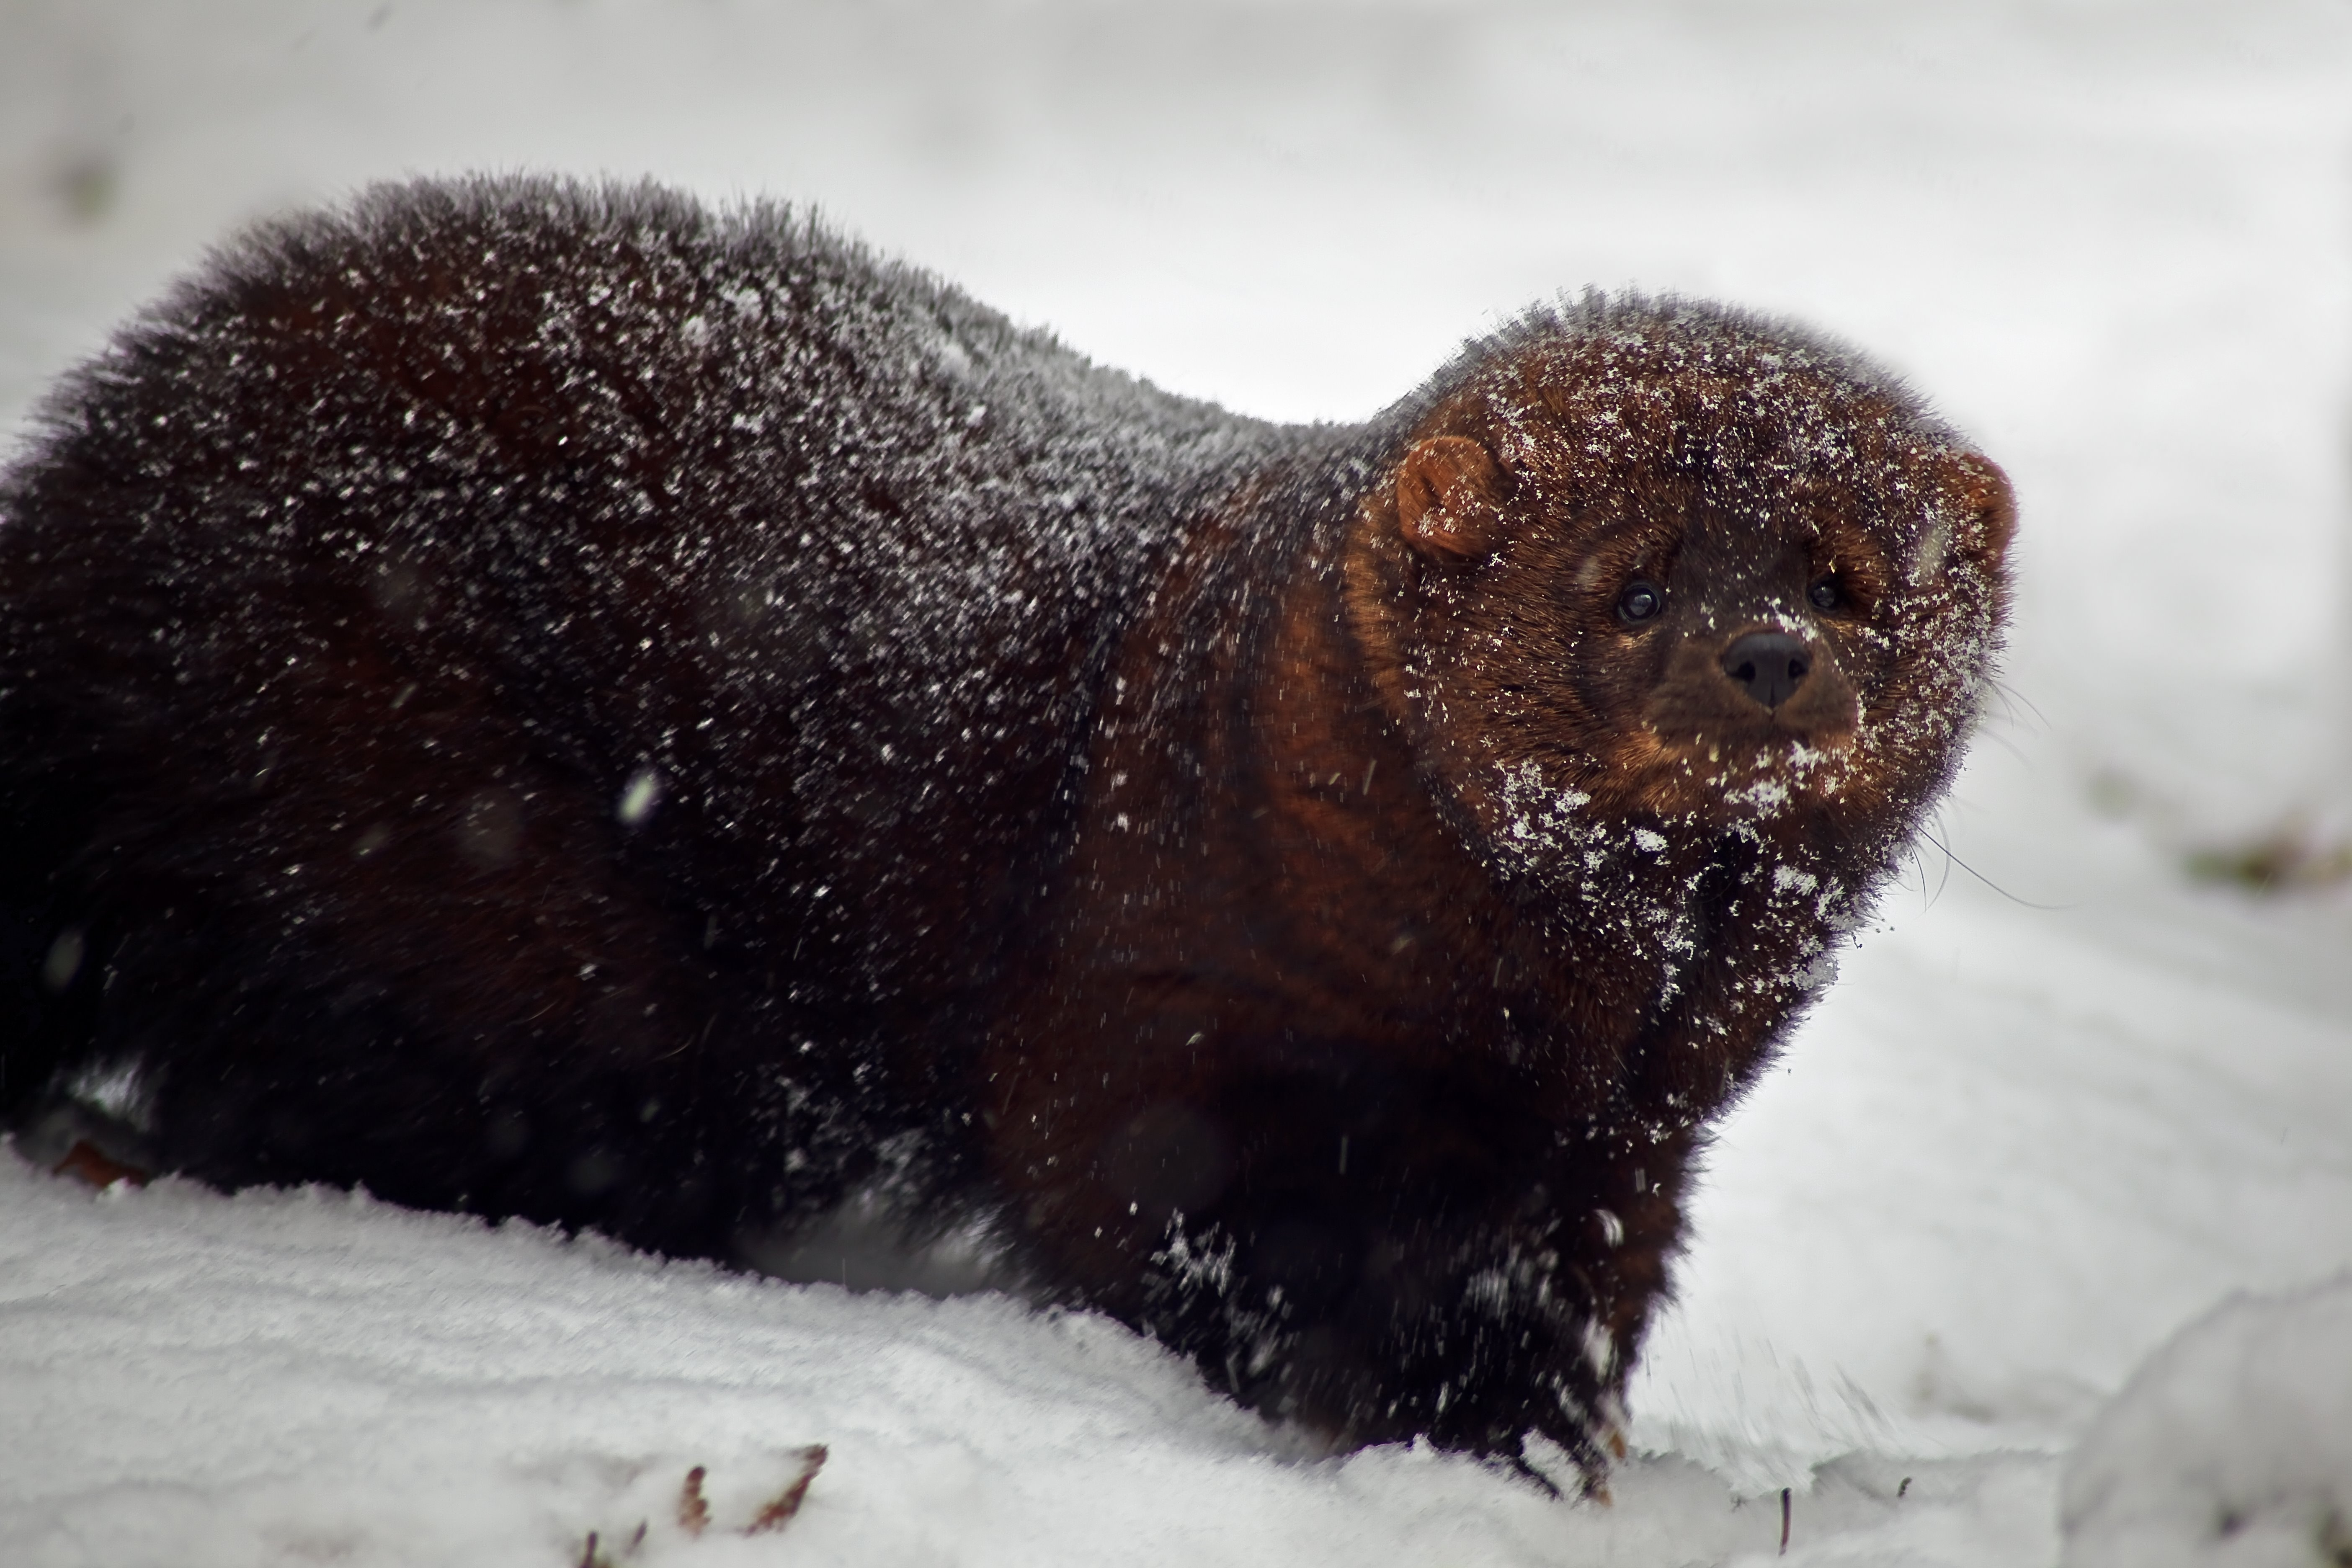 File:Fisher-animal-snow-storm - West Virginia - ForestWander.jpg - Wikimedia Commons